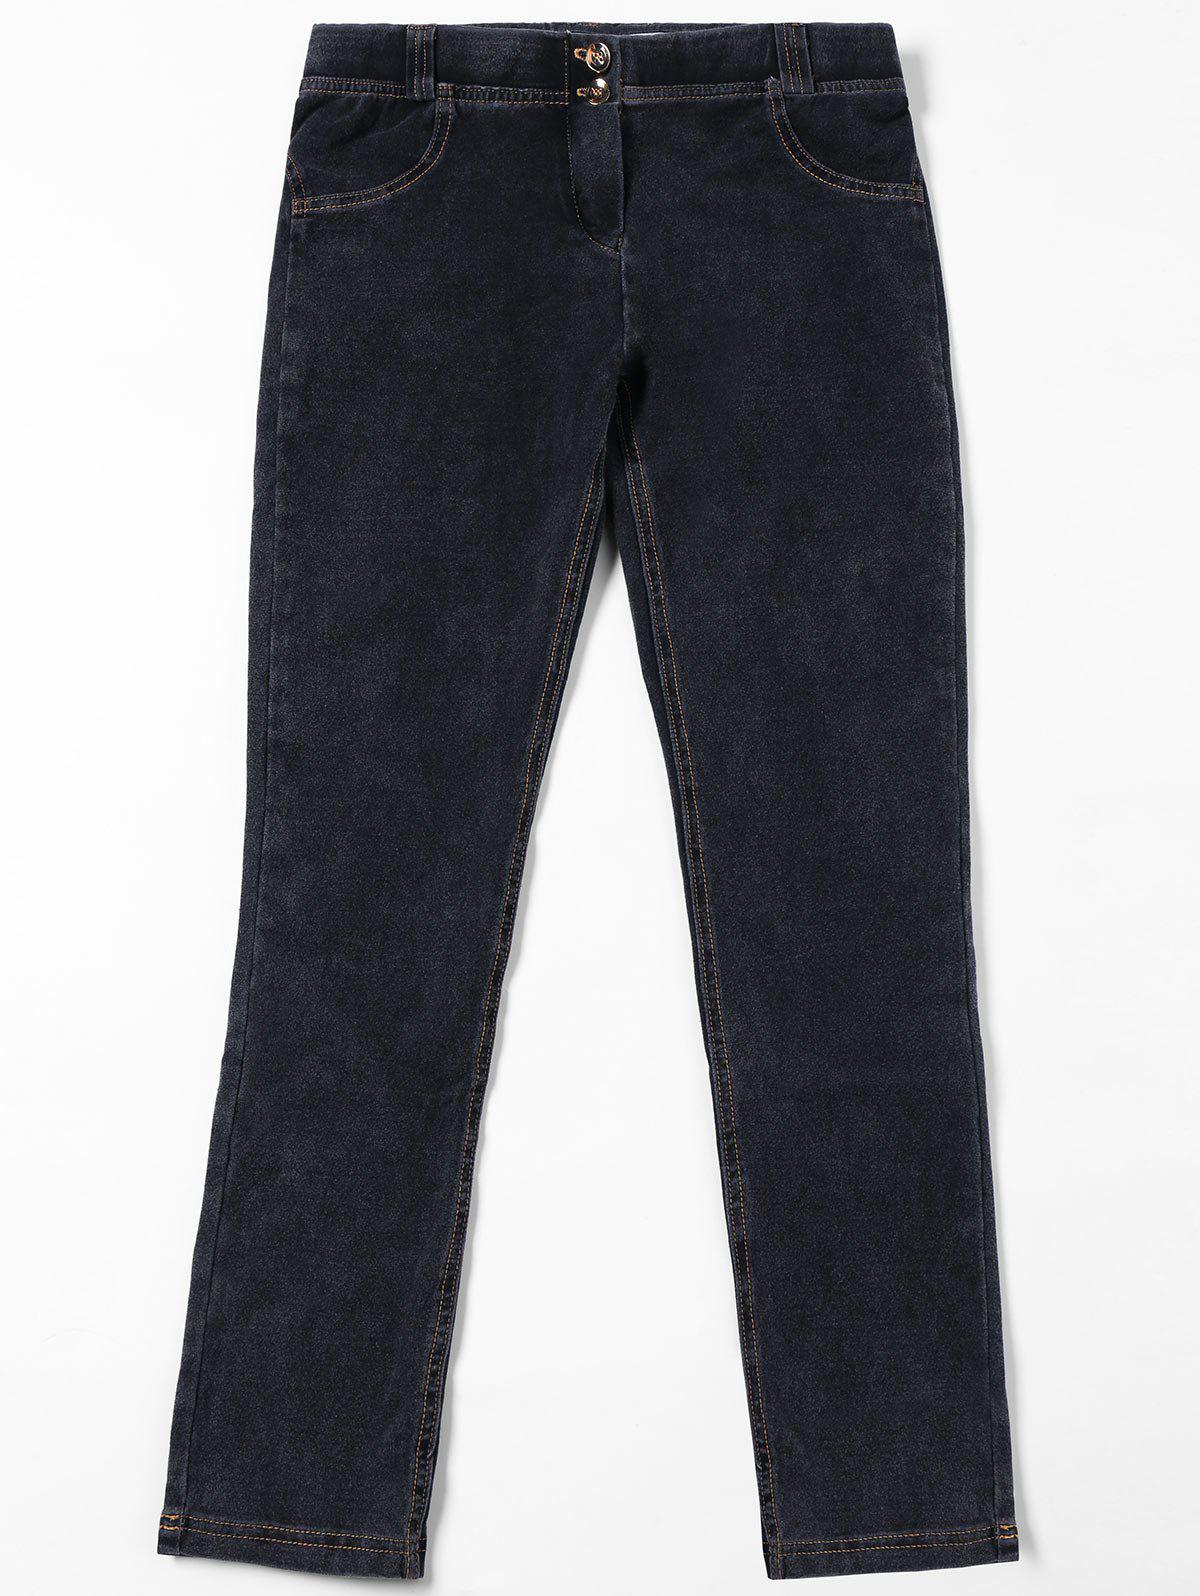 Topstitch Patch Pockets Jeans - Noir XL